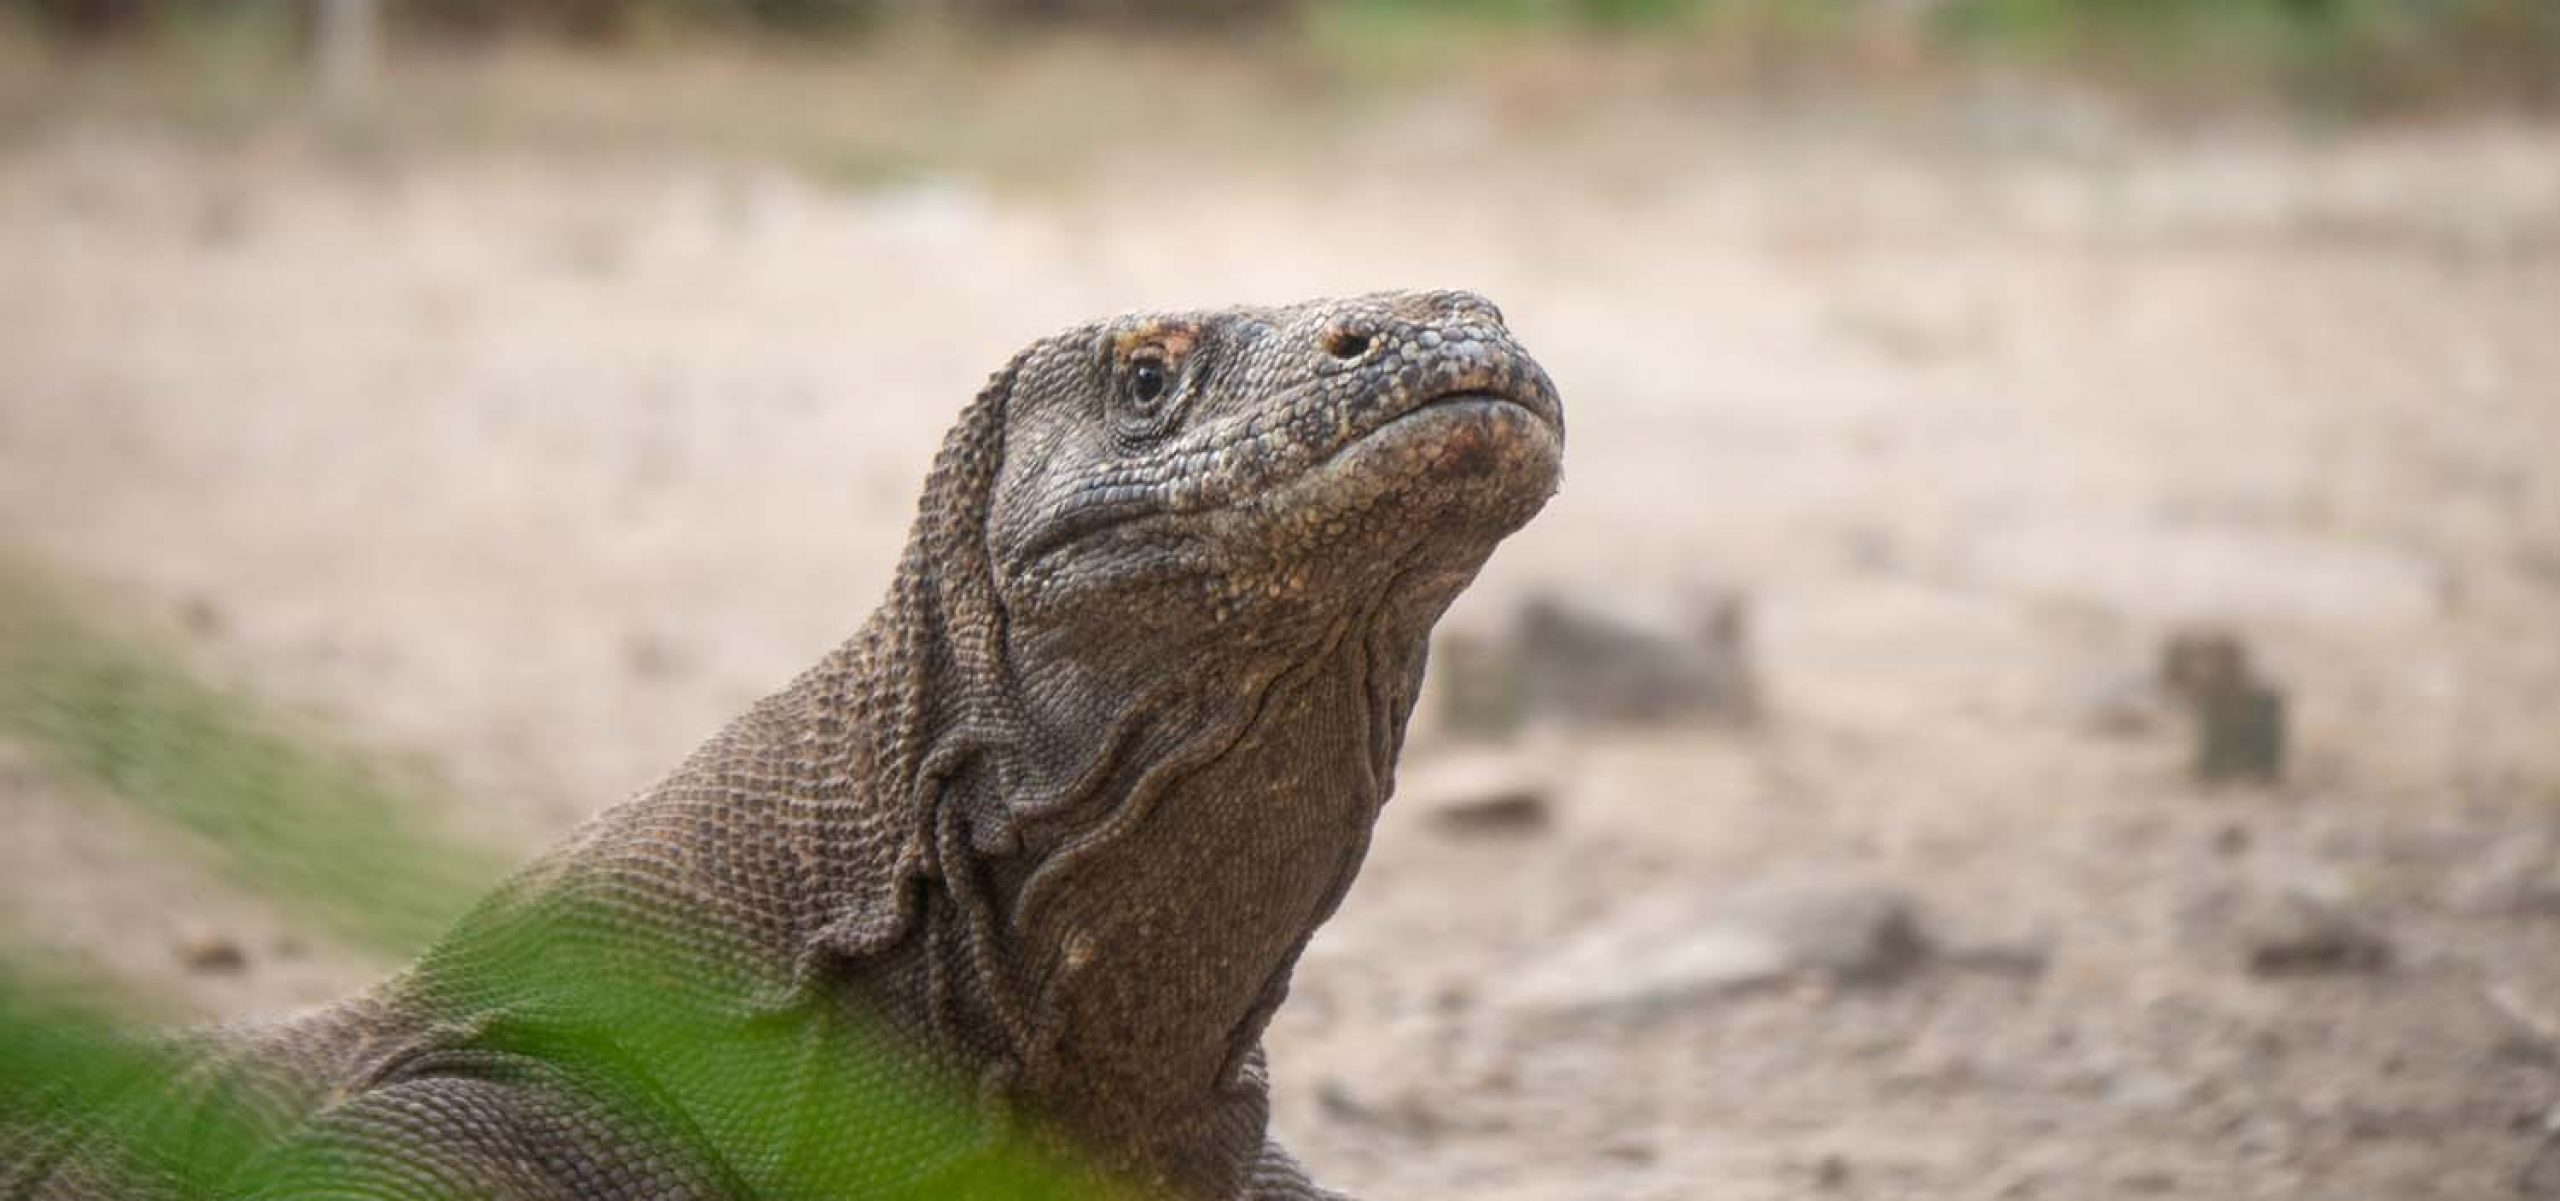 Indonesia-Komodo Dragons